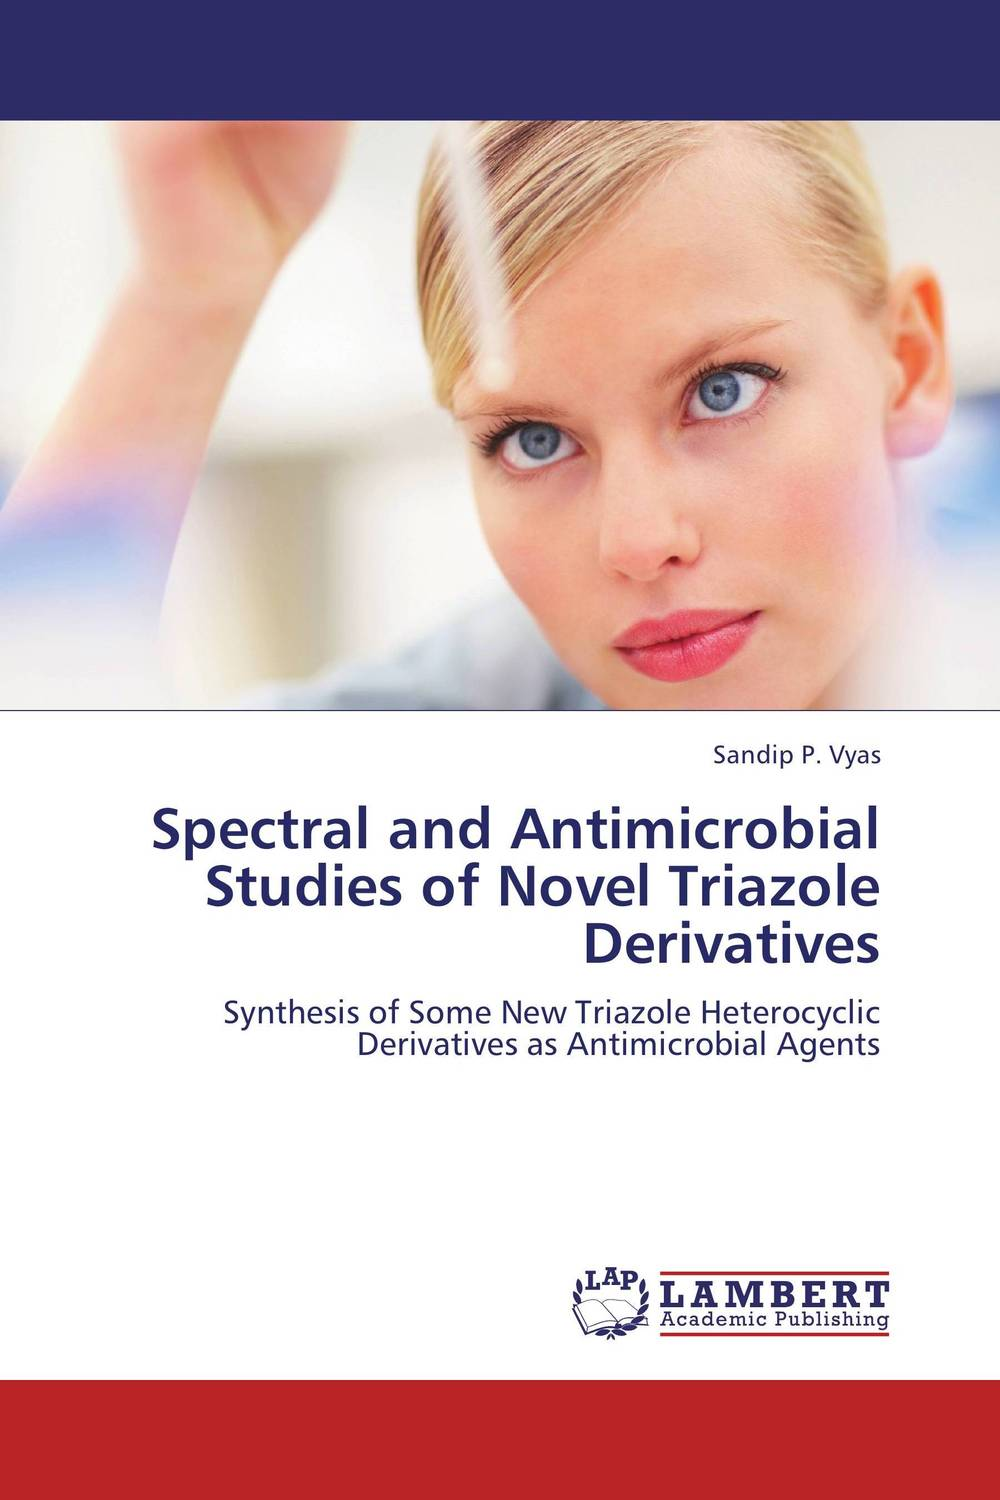 Spectral and Antimicrobial Studies of Novel Triazole Derivatives moorad choudhry fixed income securities and derivatives handbook